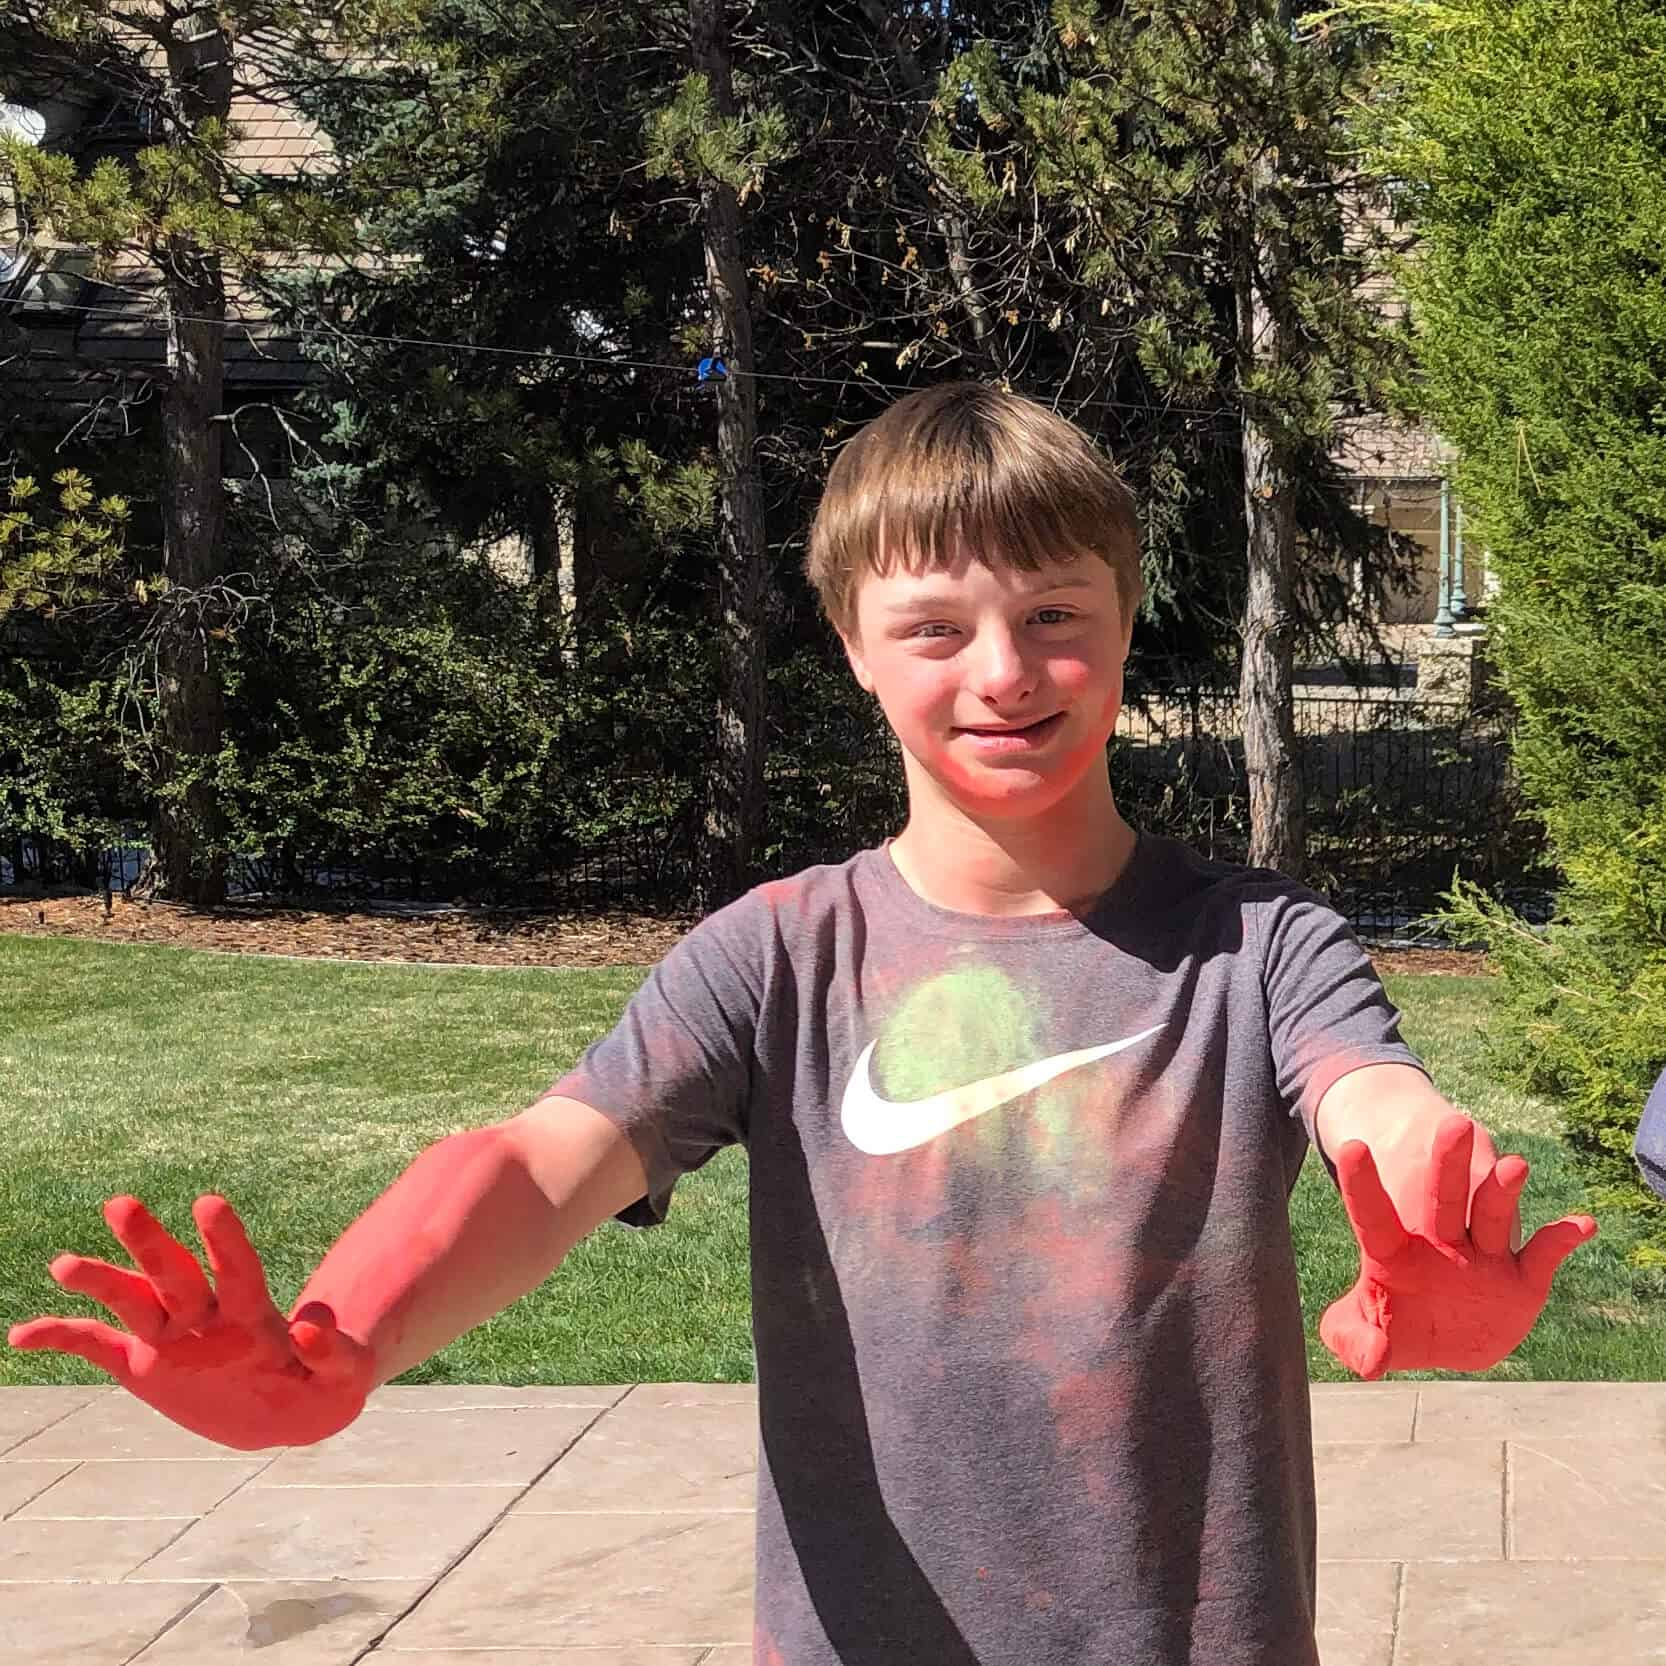 the real Guion (a young boy) with red chalk on his hands